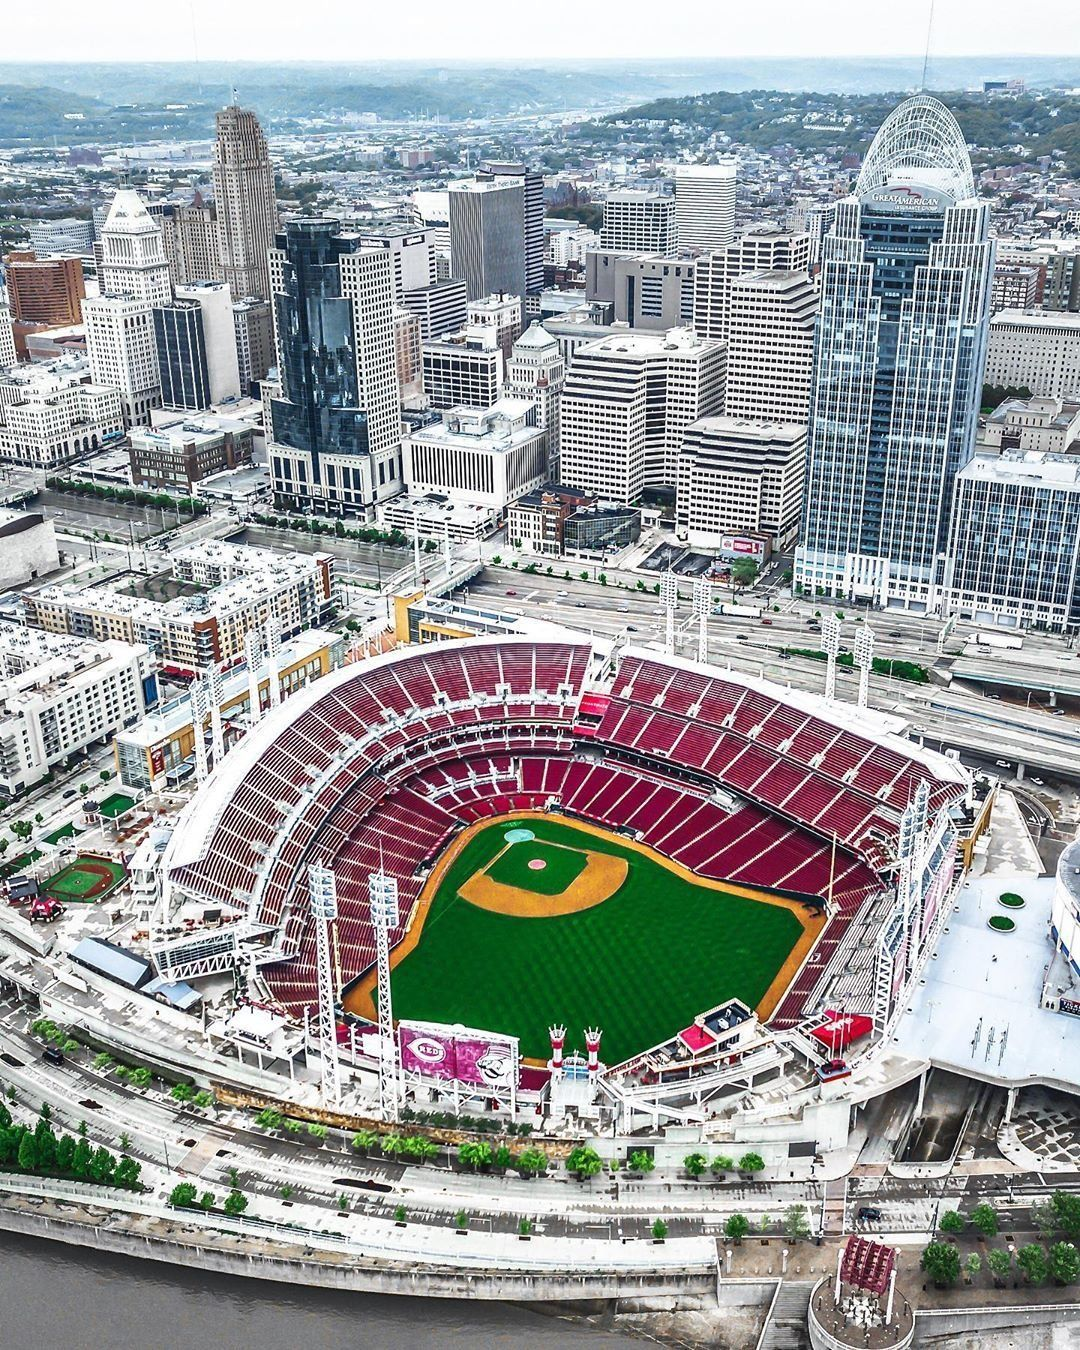 Wow Amazing Shot Of Great American Ballpark Home Of The Cincinnati Reds There Are So Many Family Friendly Things To Do Cincinnati Baseball Park Mlb Stadiums